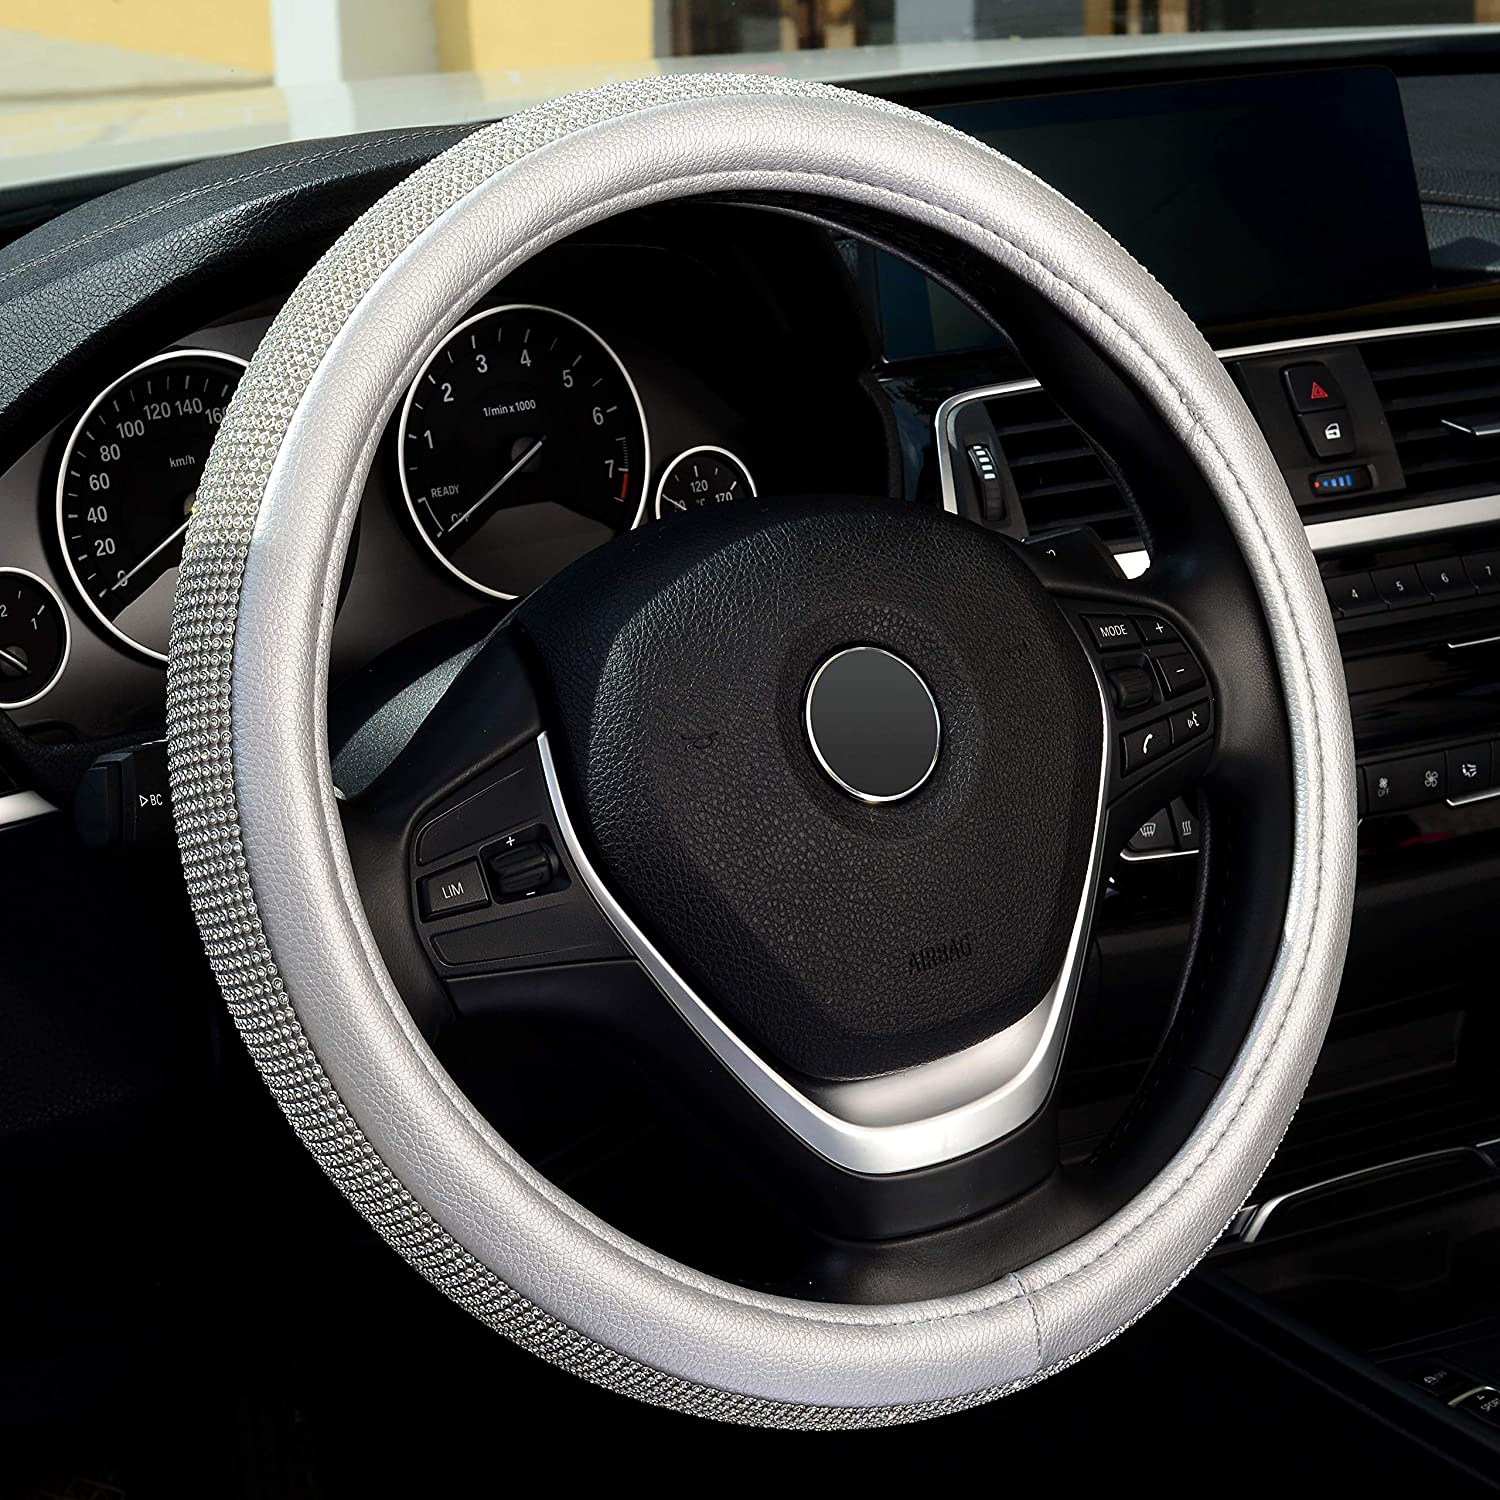 Labbyway Diamond Leather Steering Wheel Cover with Bling Bling Crystal Rhinestones, Universal Fit 15 Inch Car Wheel Protector for Women,Silver